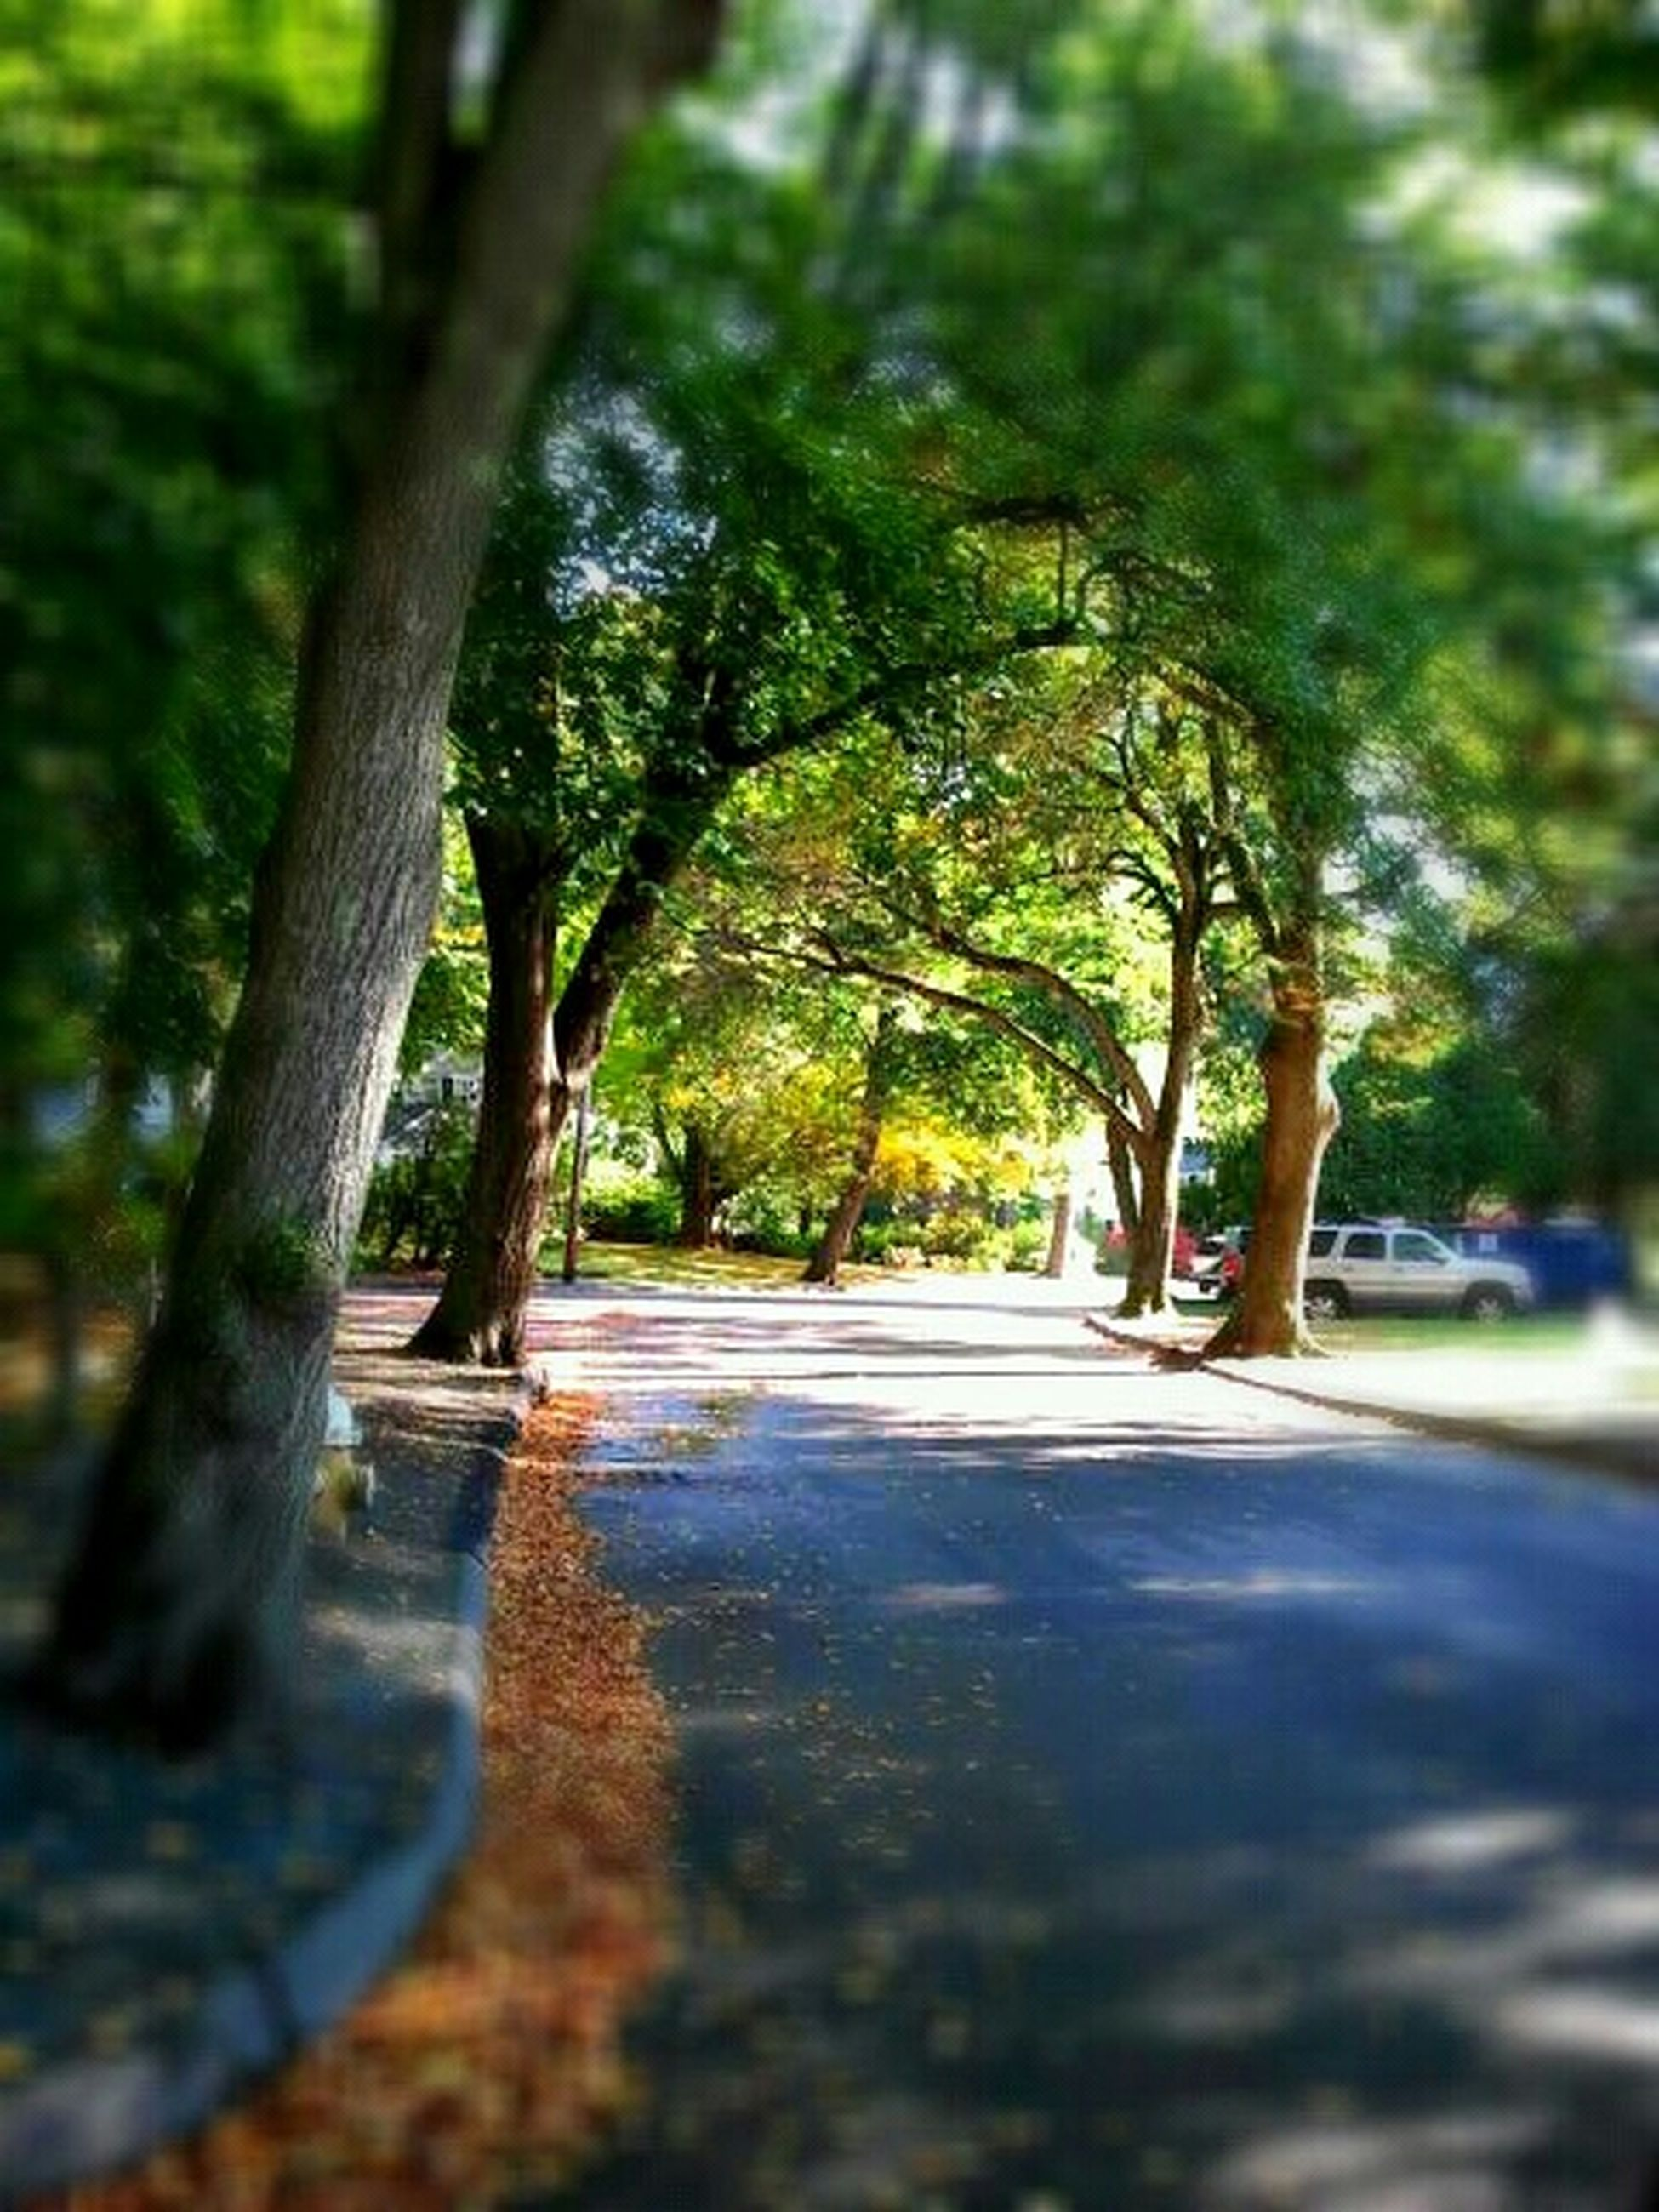 tree, the way forward, tree trunk, forest, road, tranquility, growth, nature, transportation, diminishing perspective, footpath, tranquil scene, street, selective focus, sunlight, treelined, shadow, day, vanishing point, surface level